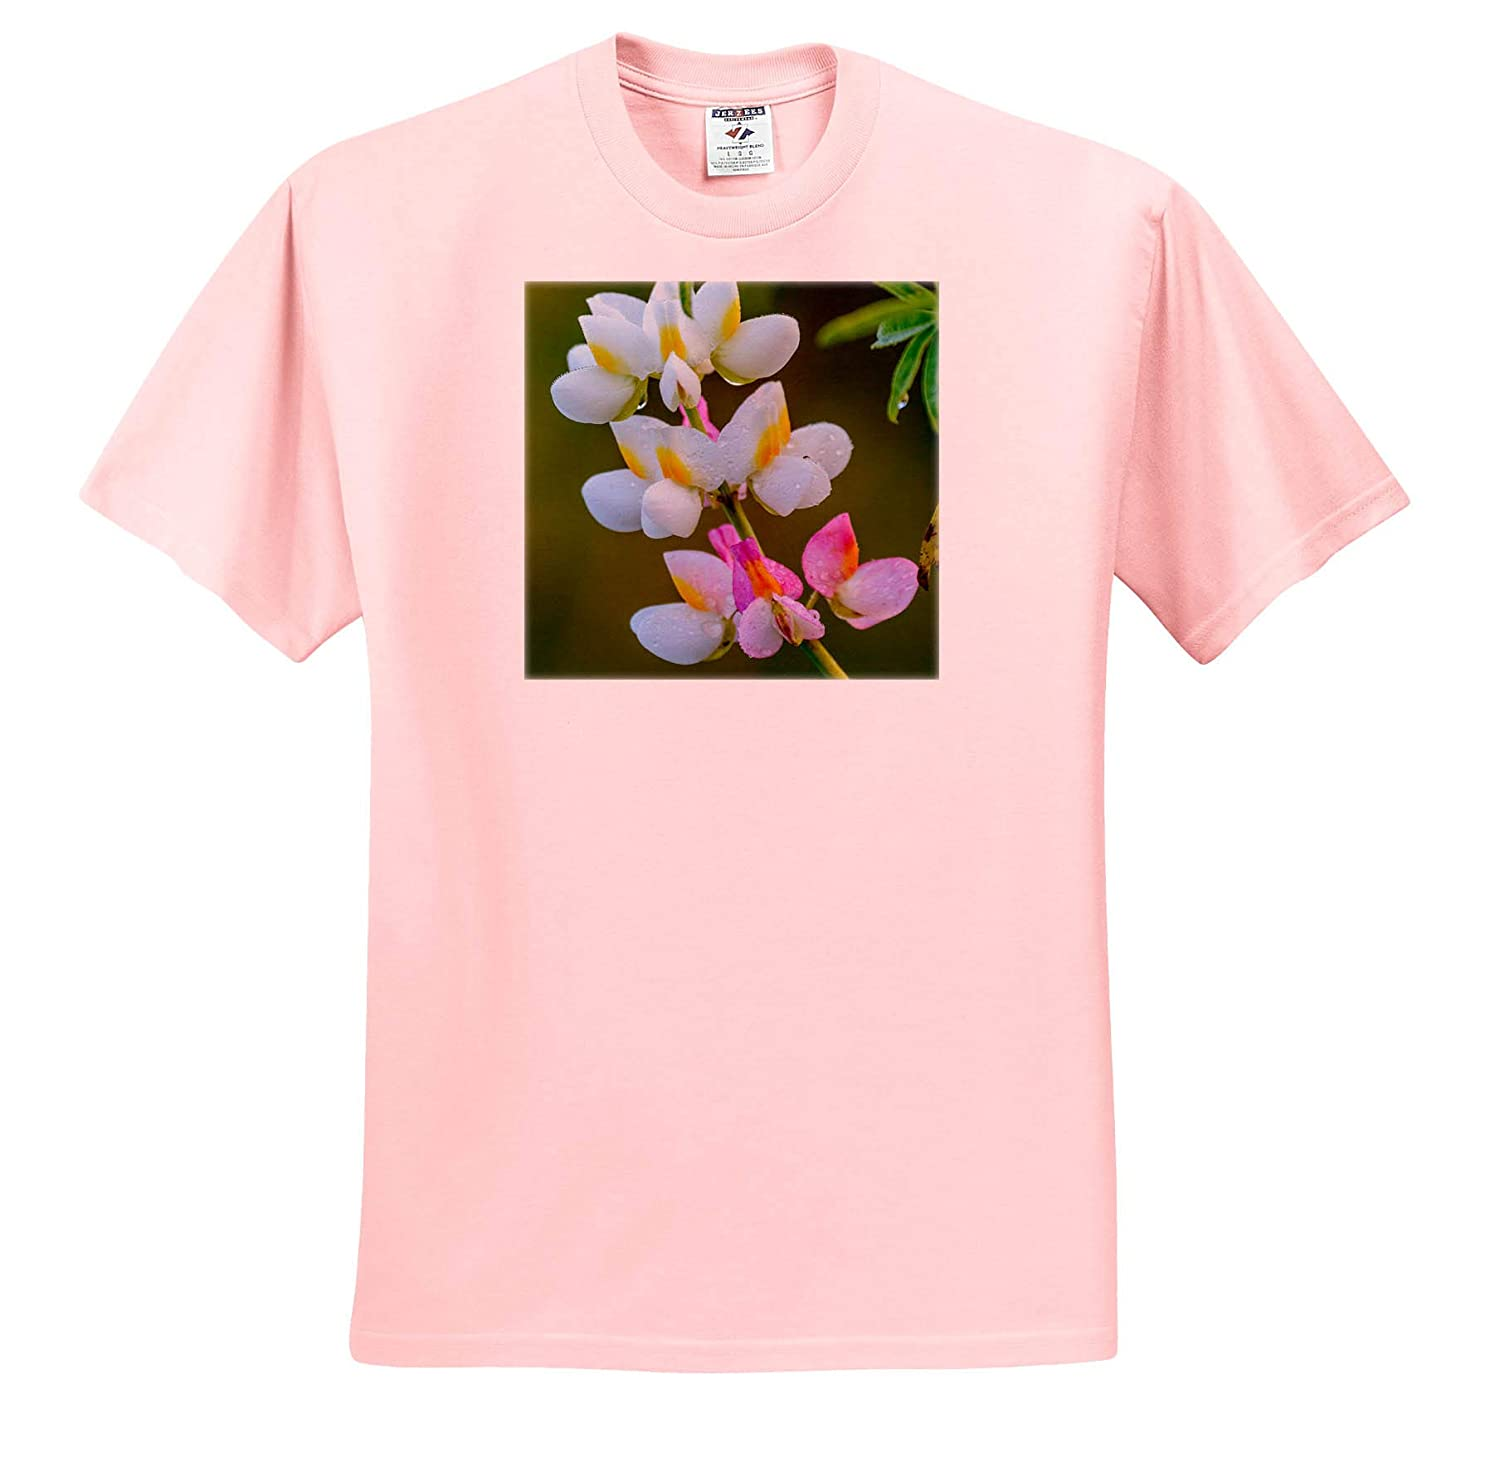 - Adult T-Shirt XL Flowers 3dRose Danita Delimont Wildflower Ethiopia ts/_310420 Bale Mountains National Park